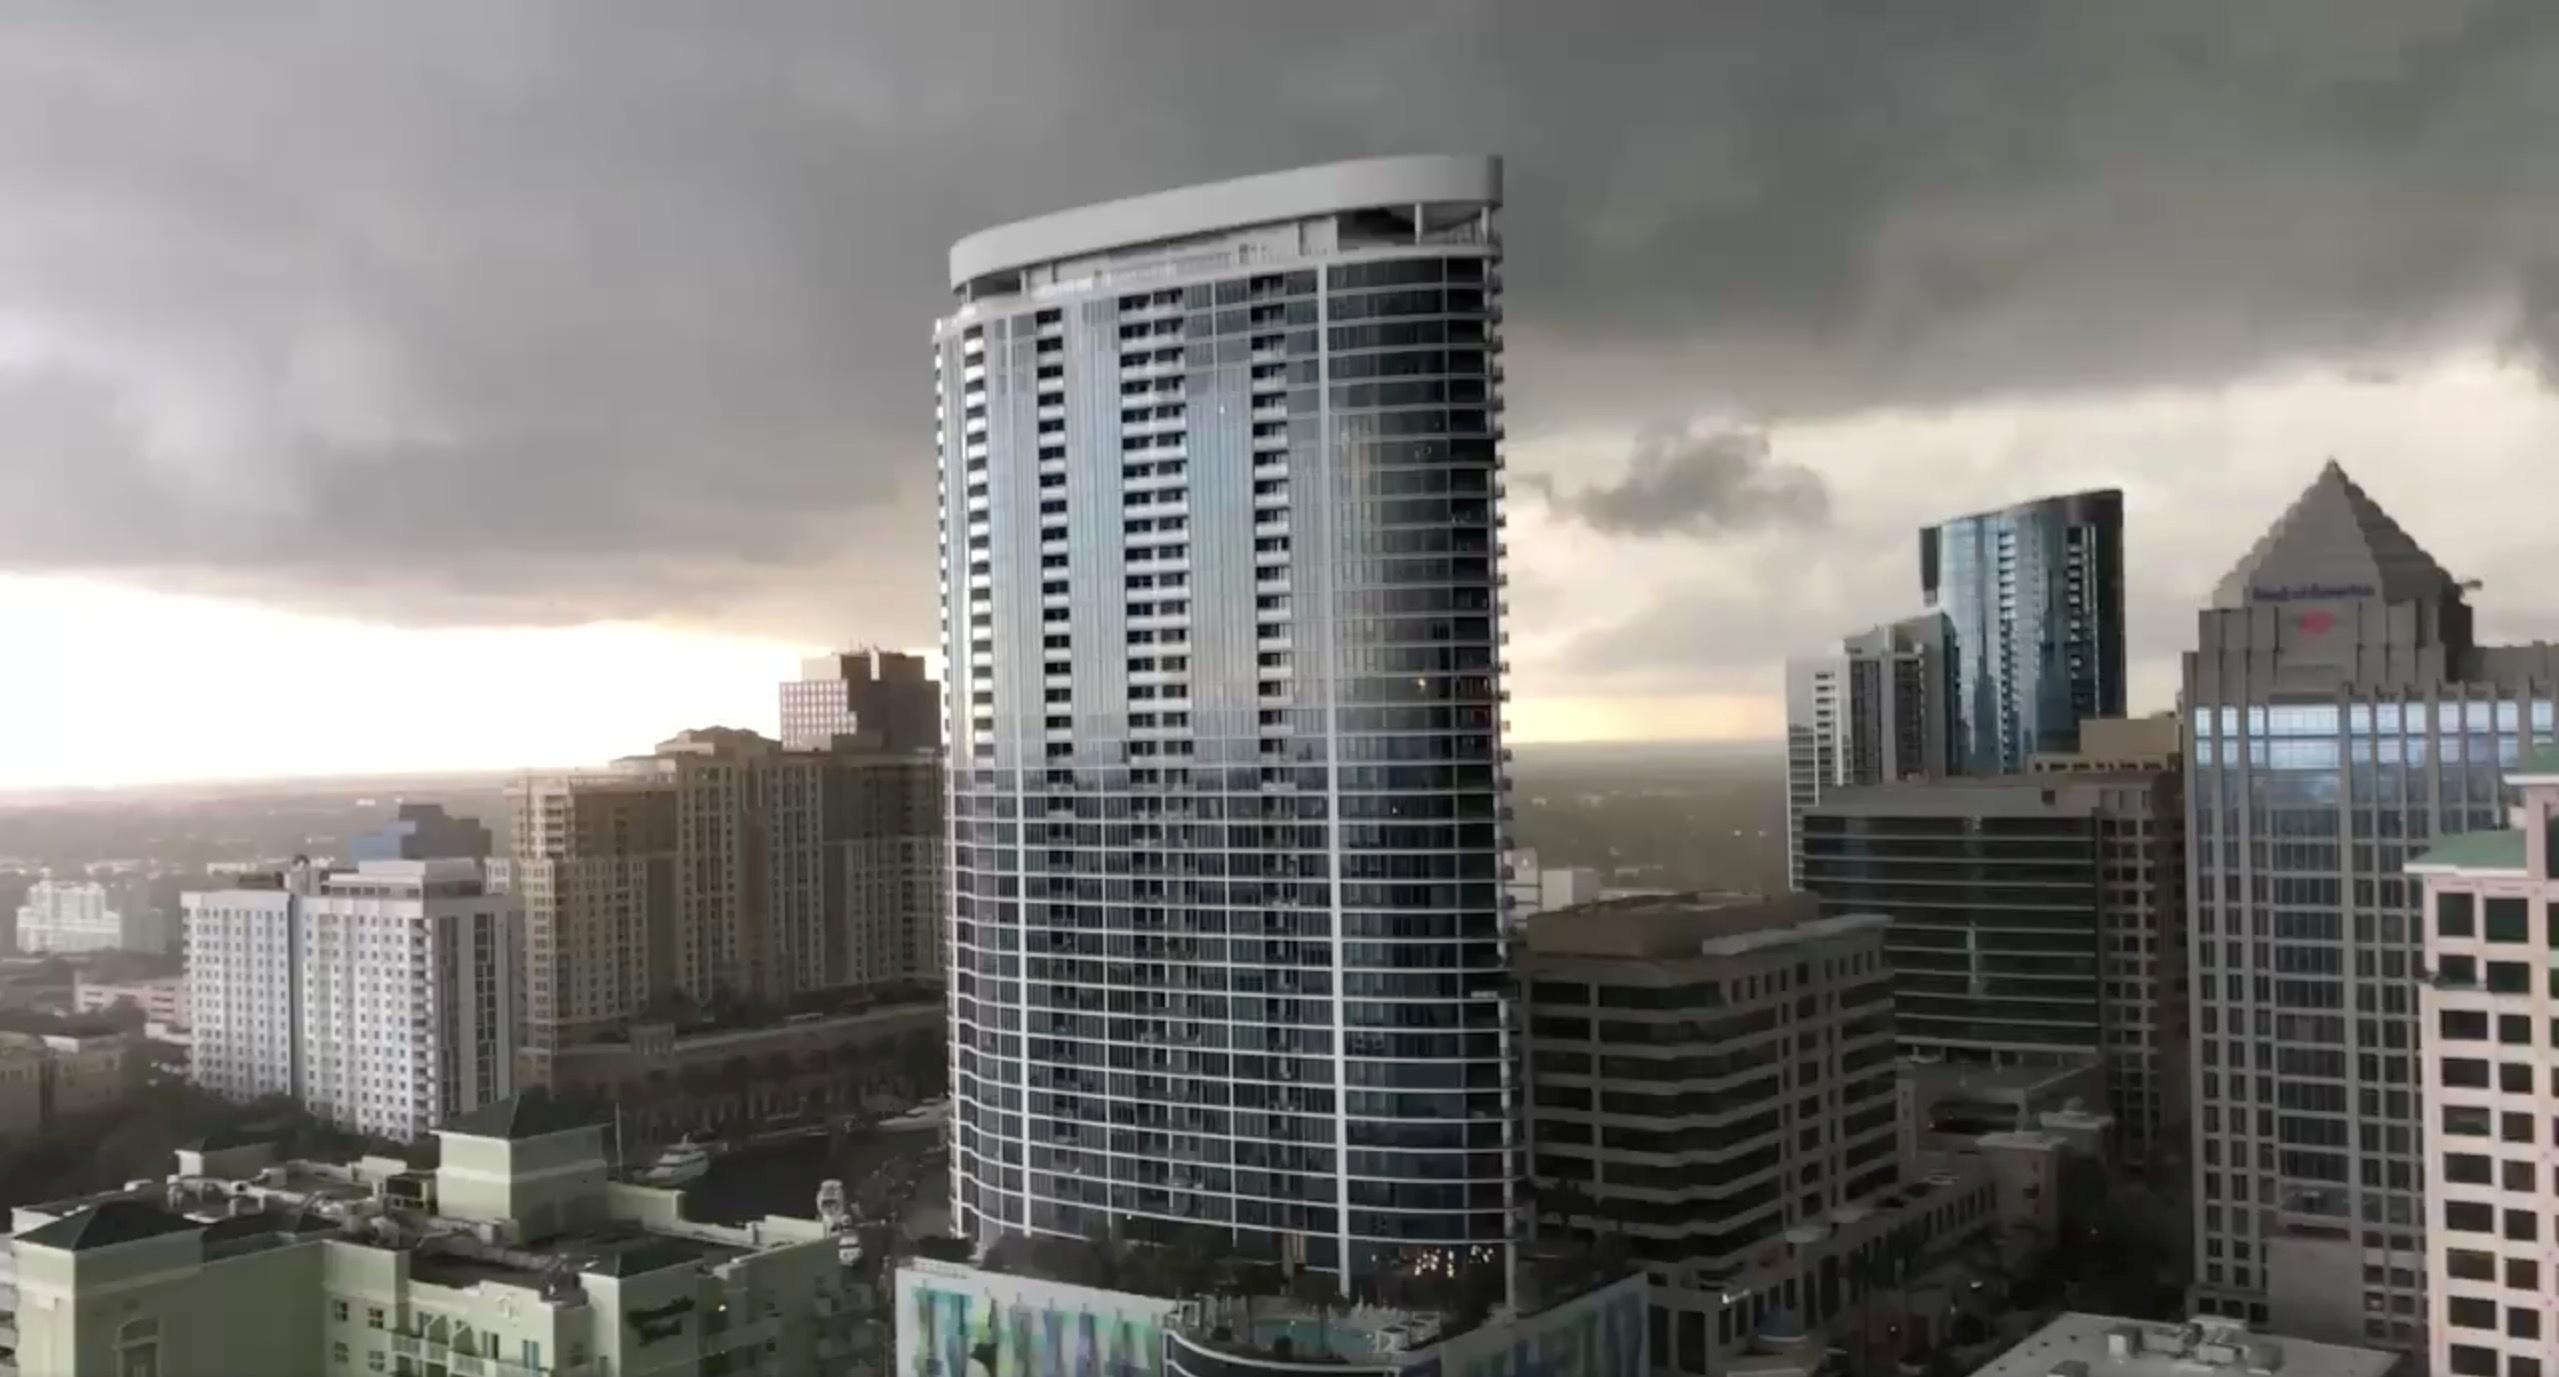 Two possible tornados spotted in Fort Lauderdale area